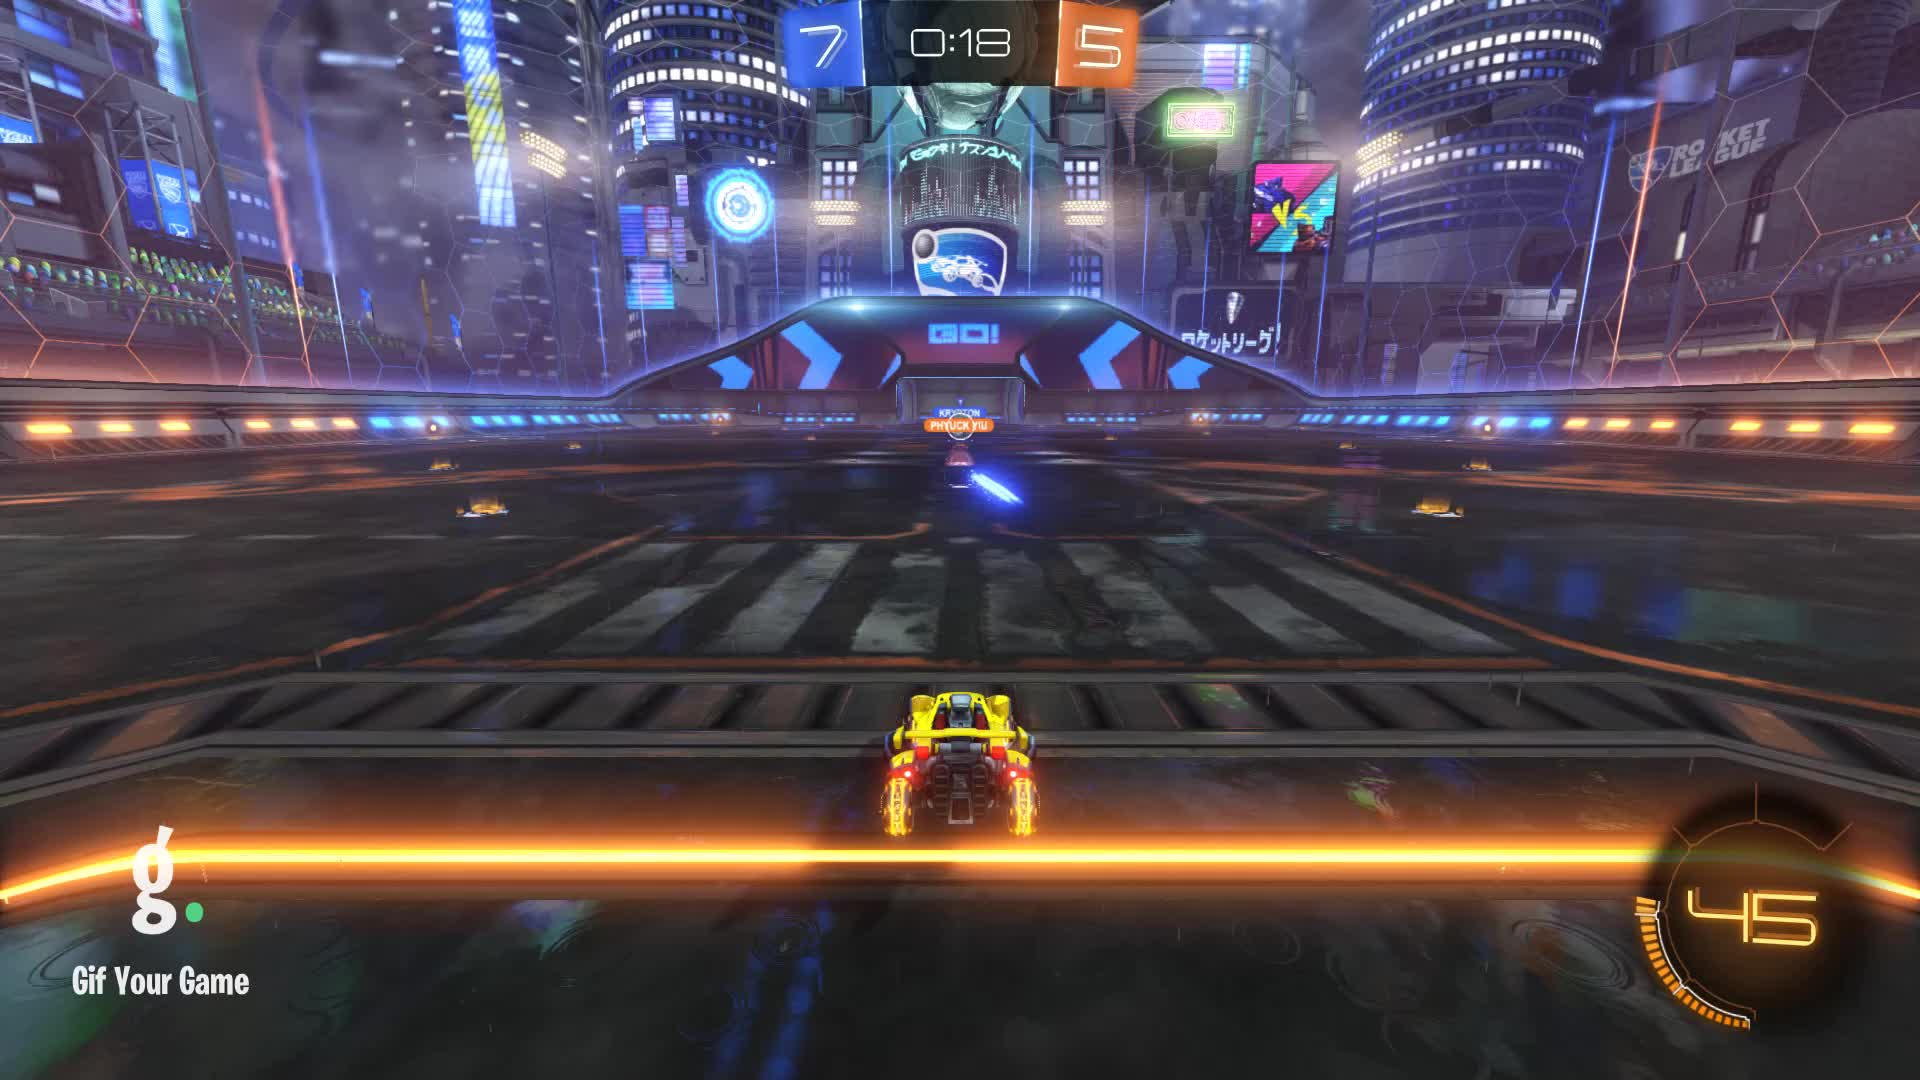 Assist, Gif Your Game, GifYourGame, Rocket League, RocketLeague, Timper [NL], Assist 8: Timper [NL] GIFs